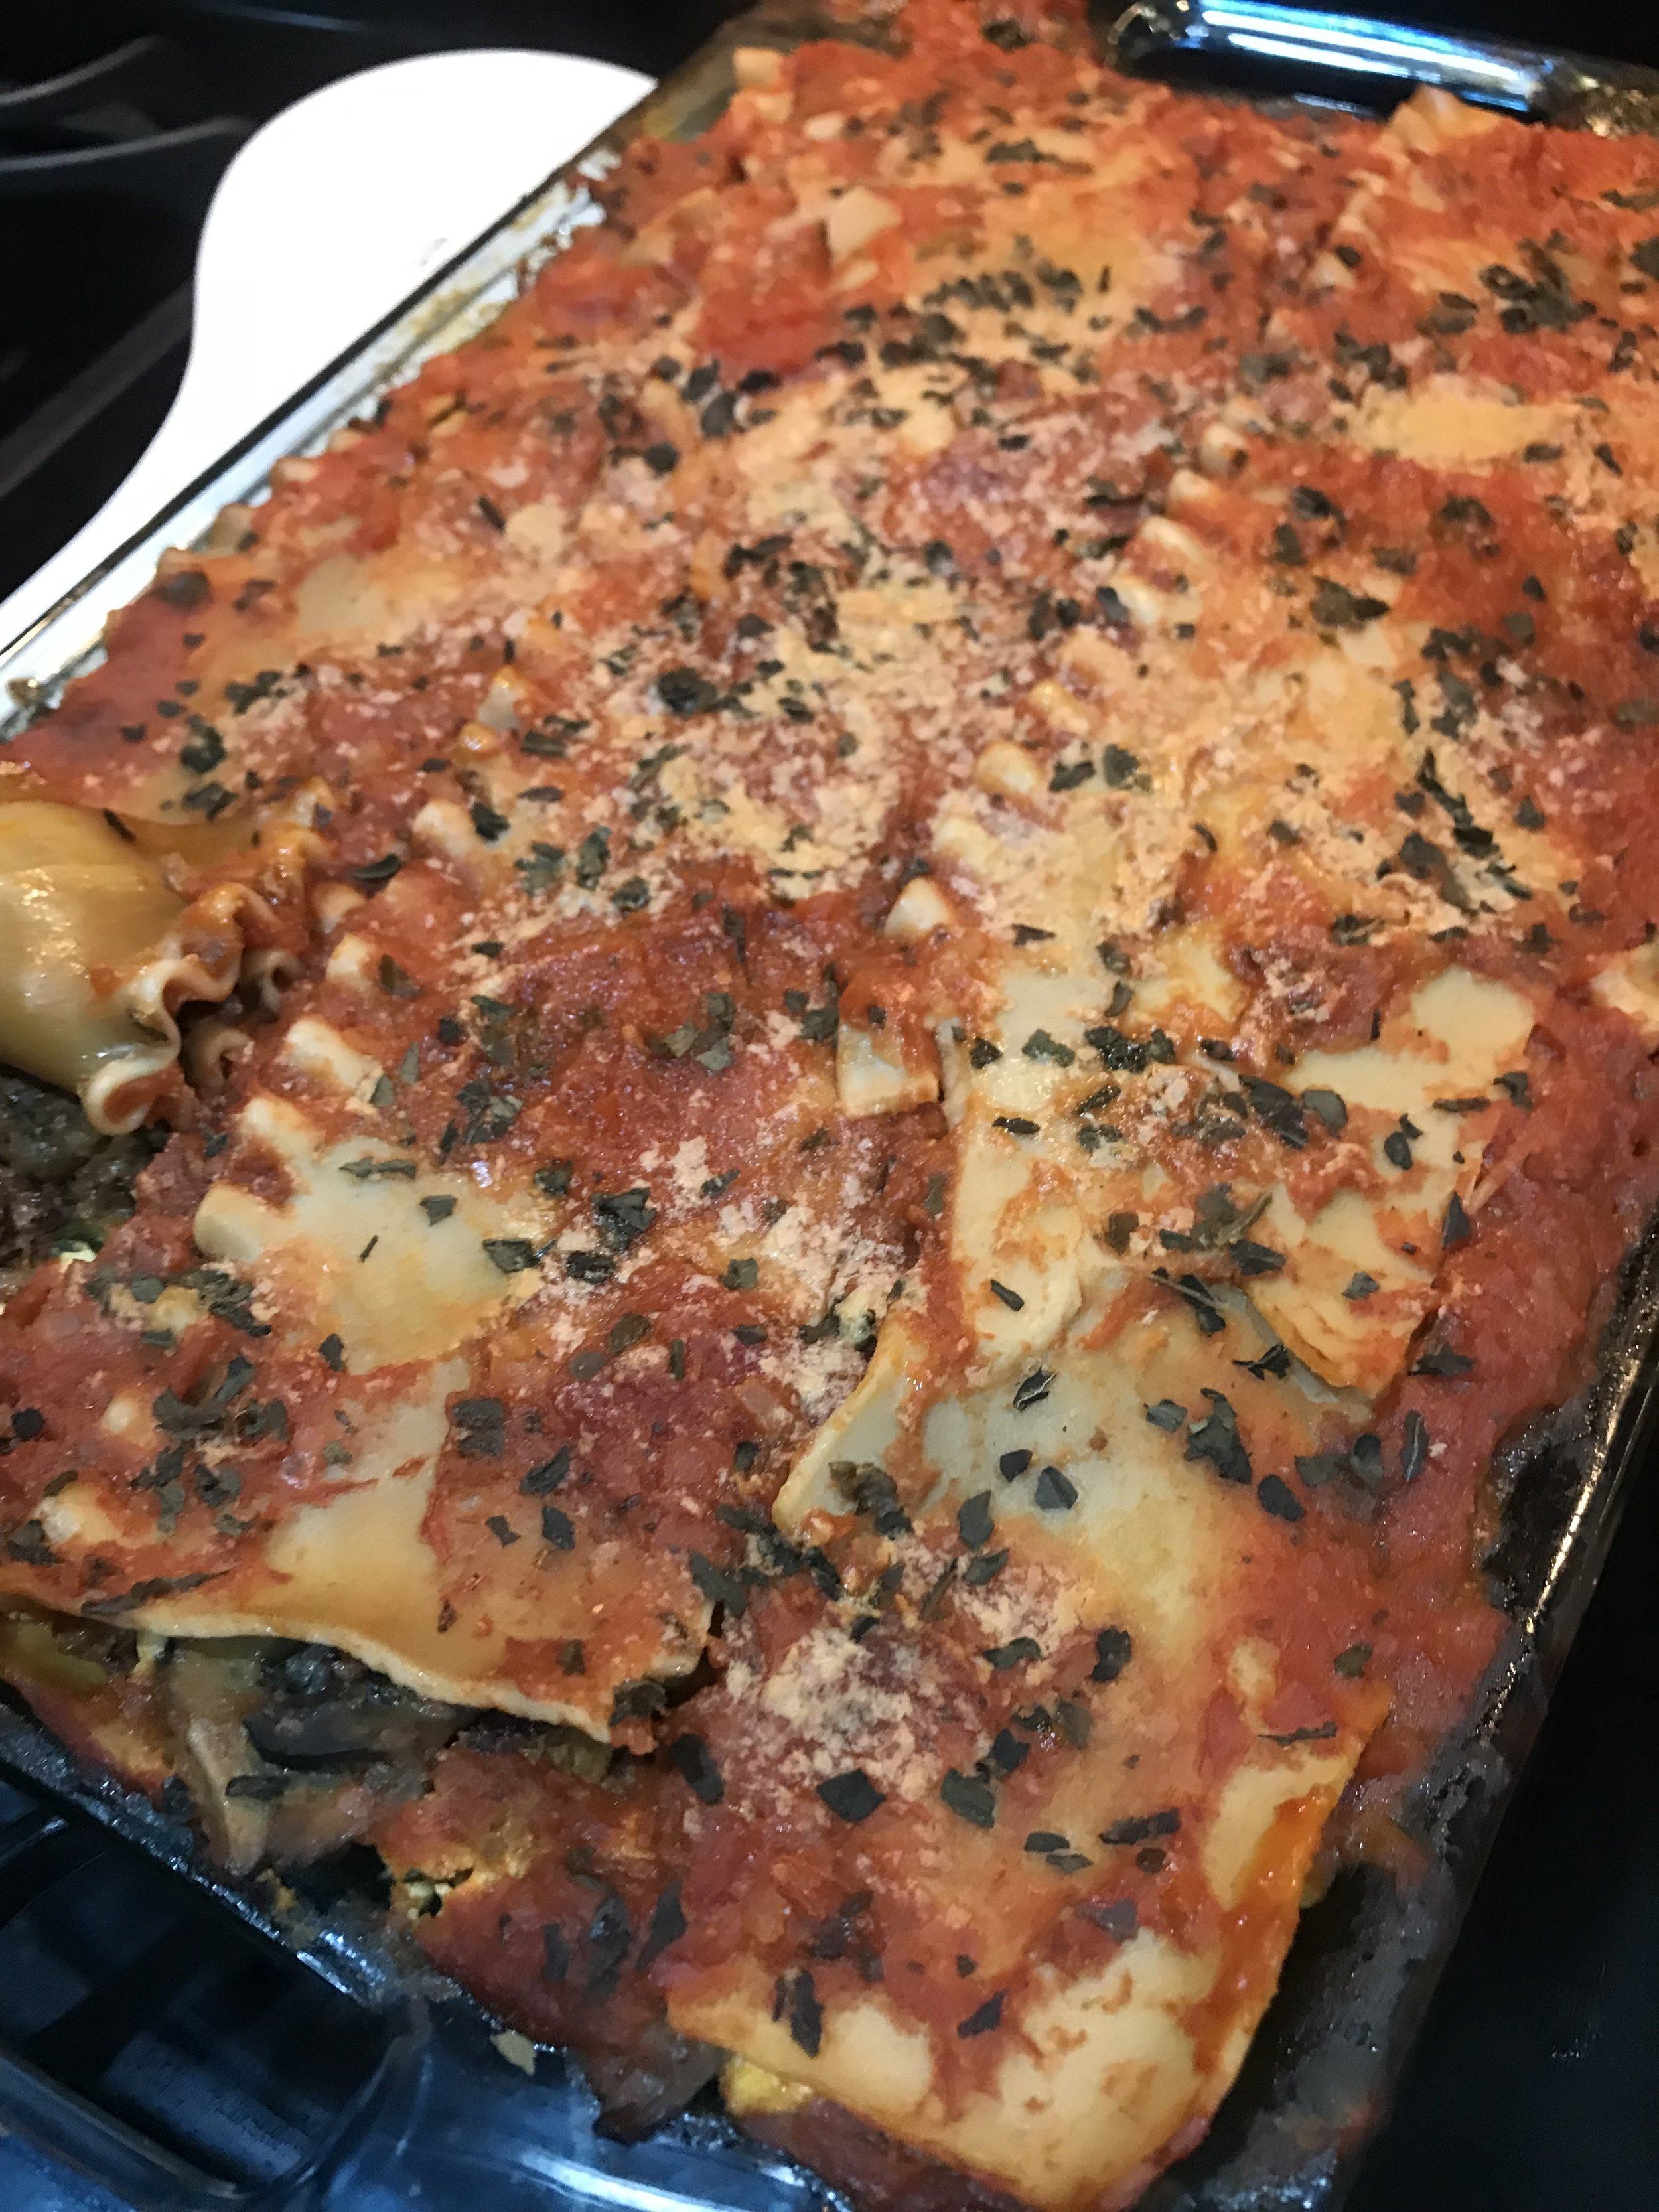 One of my favorite recipes is to bake vegetable lasagna with almond ricotta cheese.